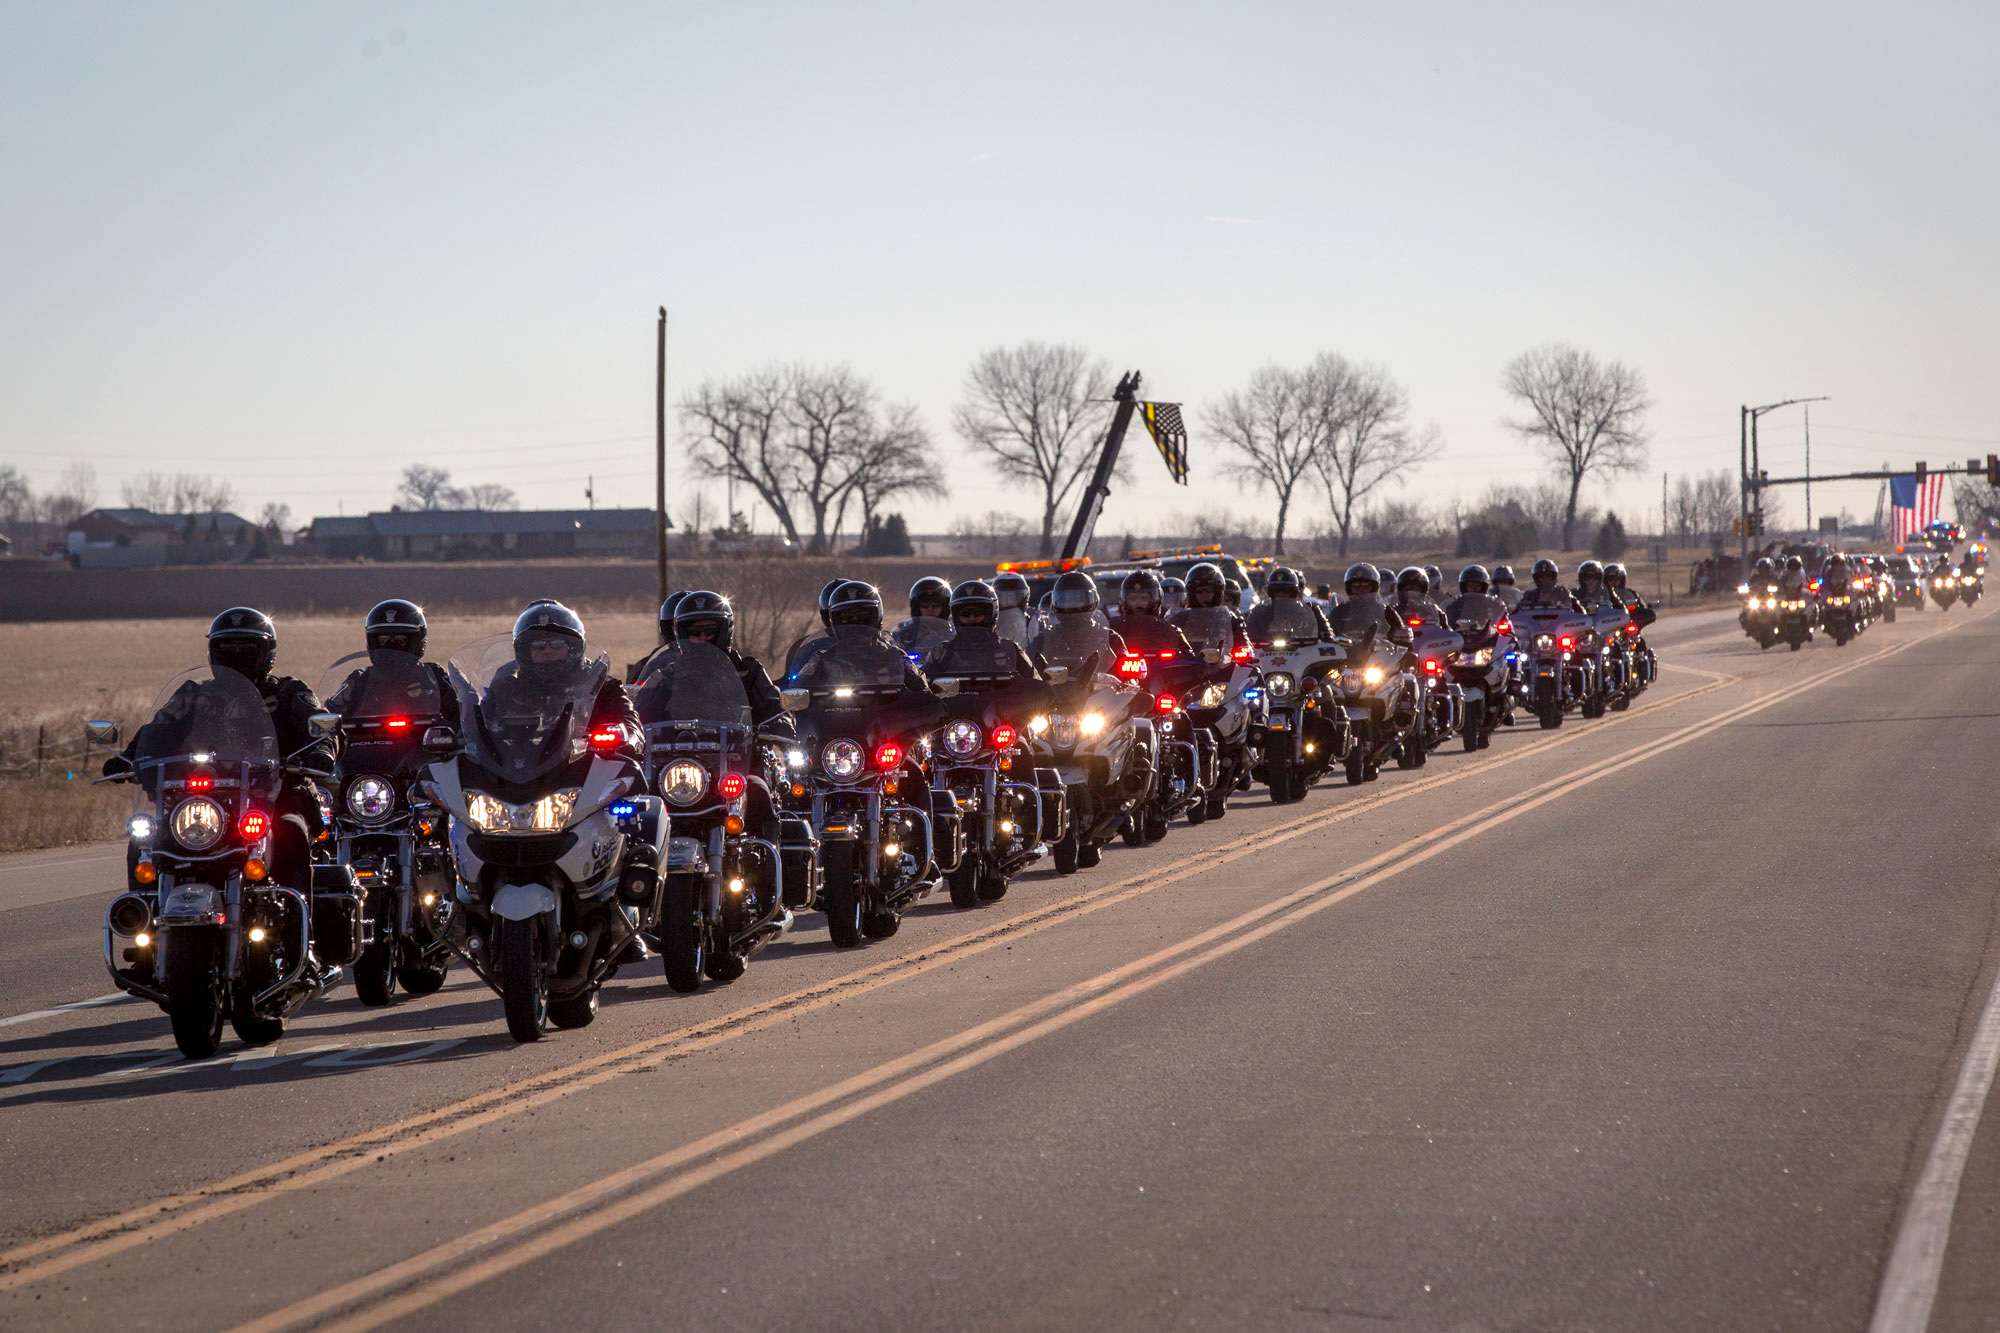 <p>A motorcycle escort leads the funeral procession of CSP Cpl. DanGroves in Longmont on Thursday morning, March 21, 2019.</p>